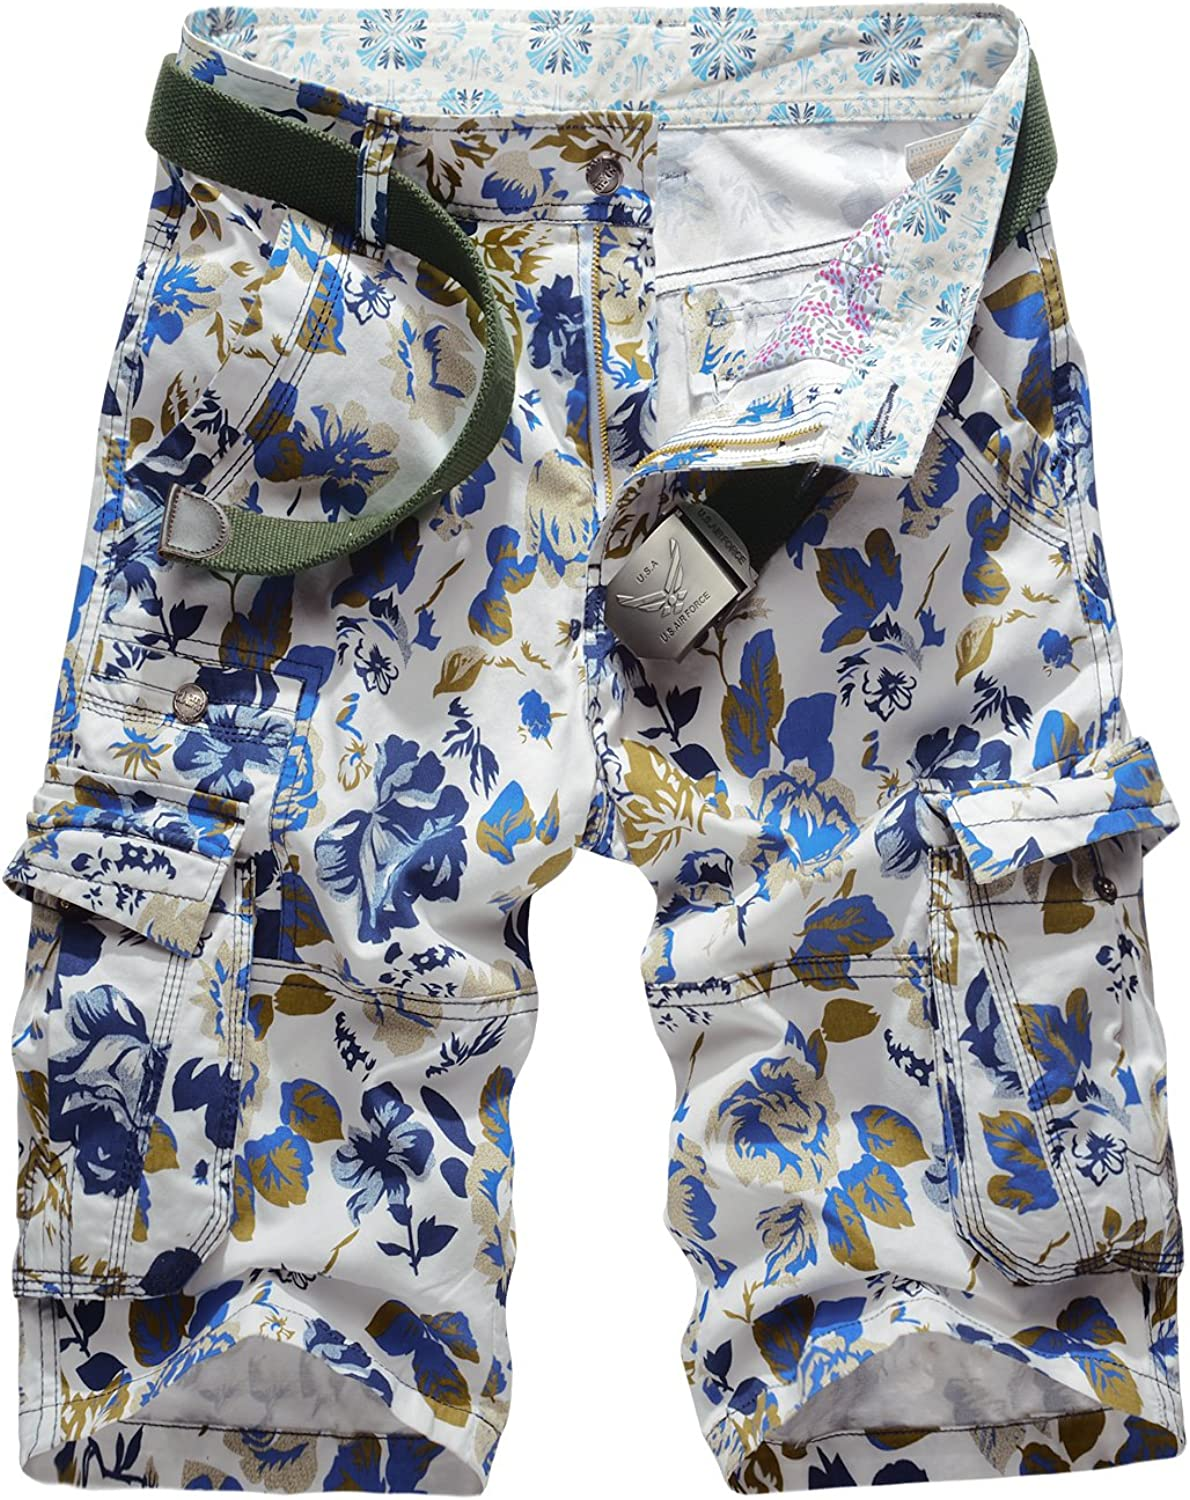 Colorfulworldstore Summer Mens Camouflage Casual Trust Shorts 35% OFF Pants